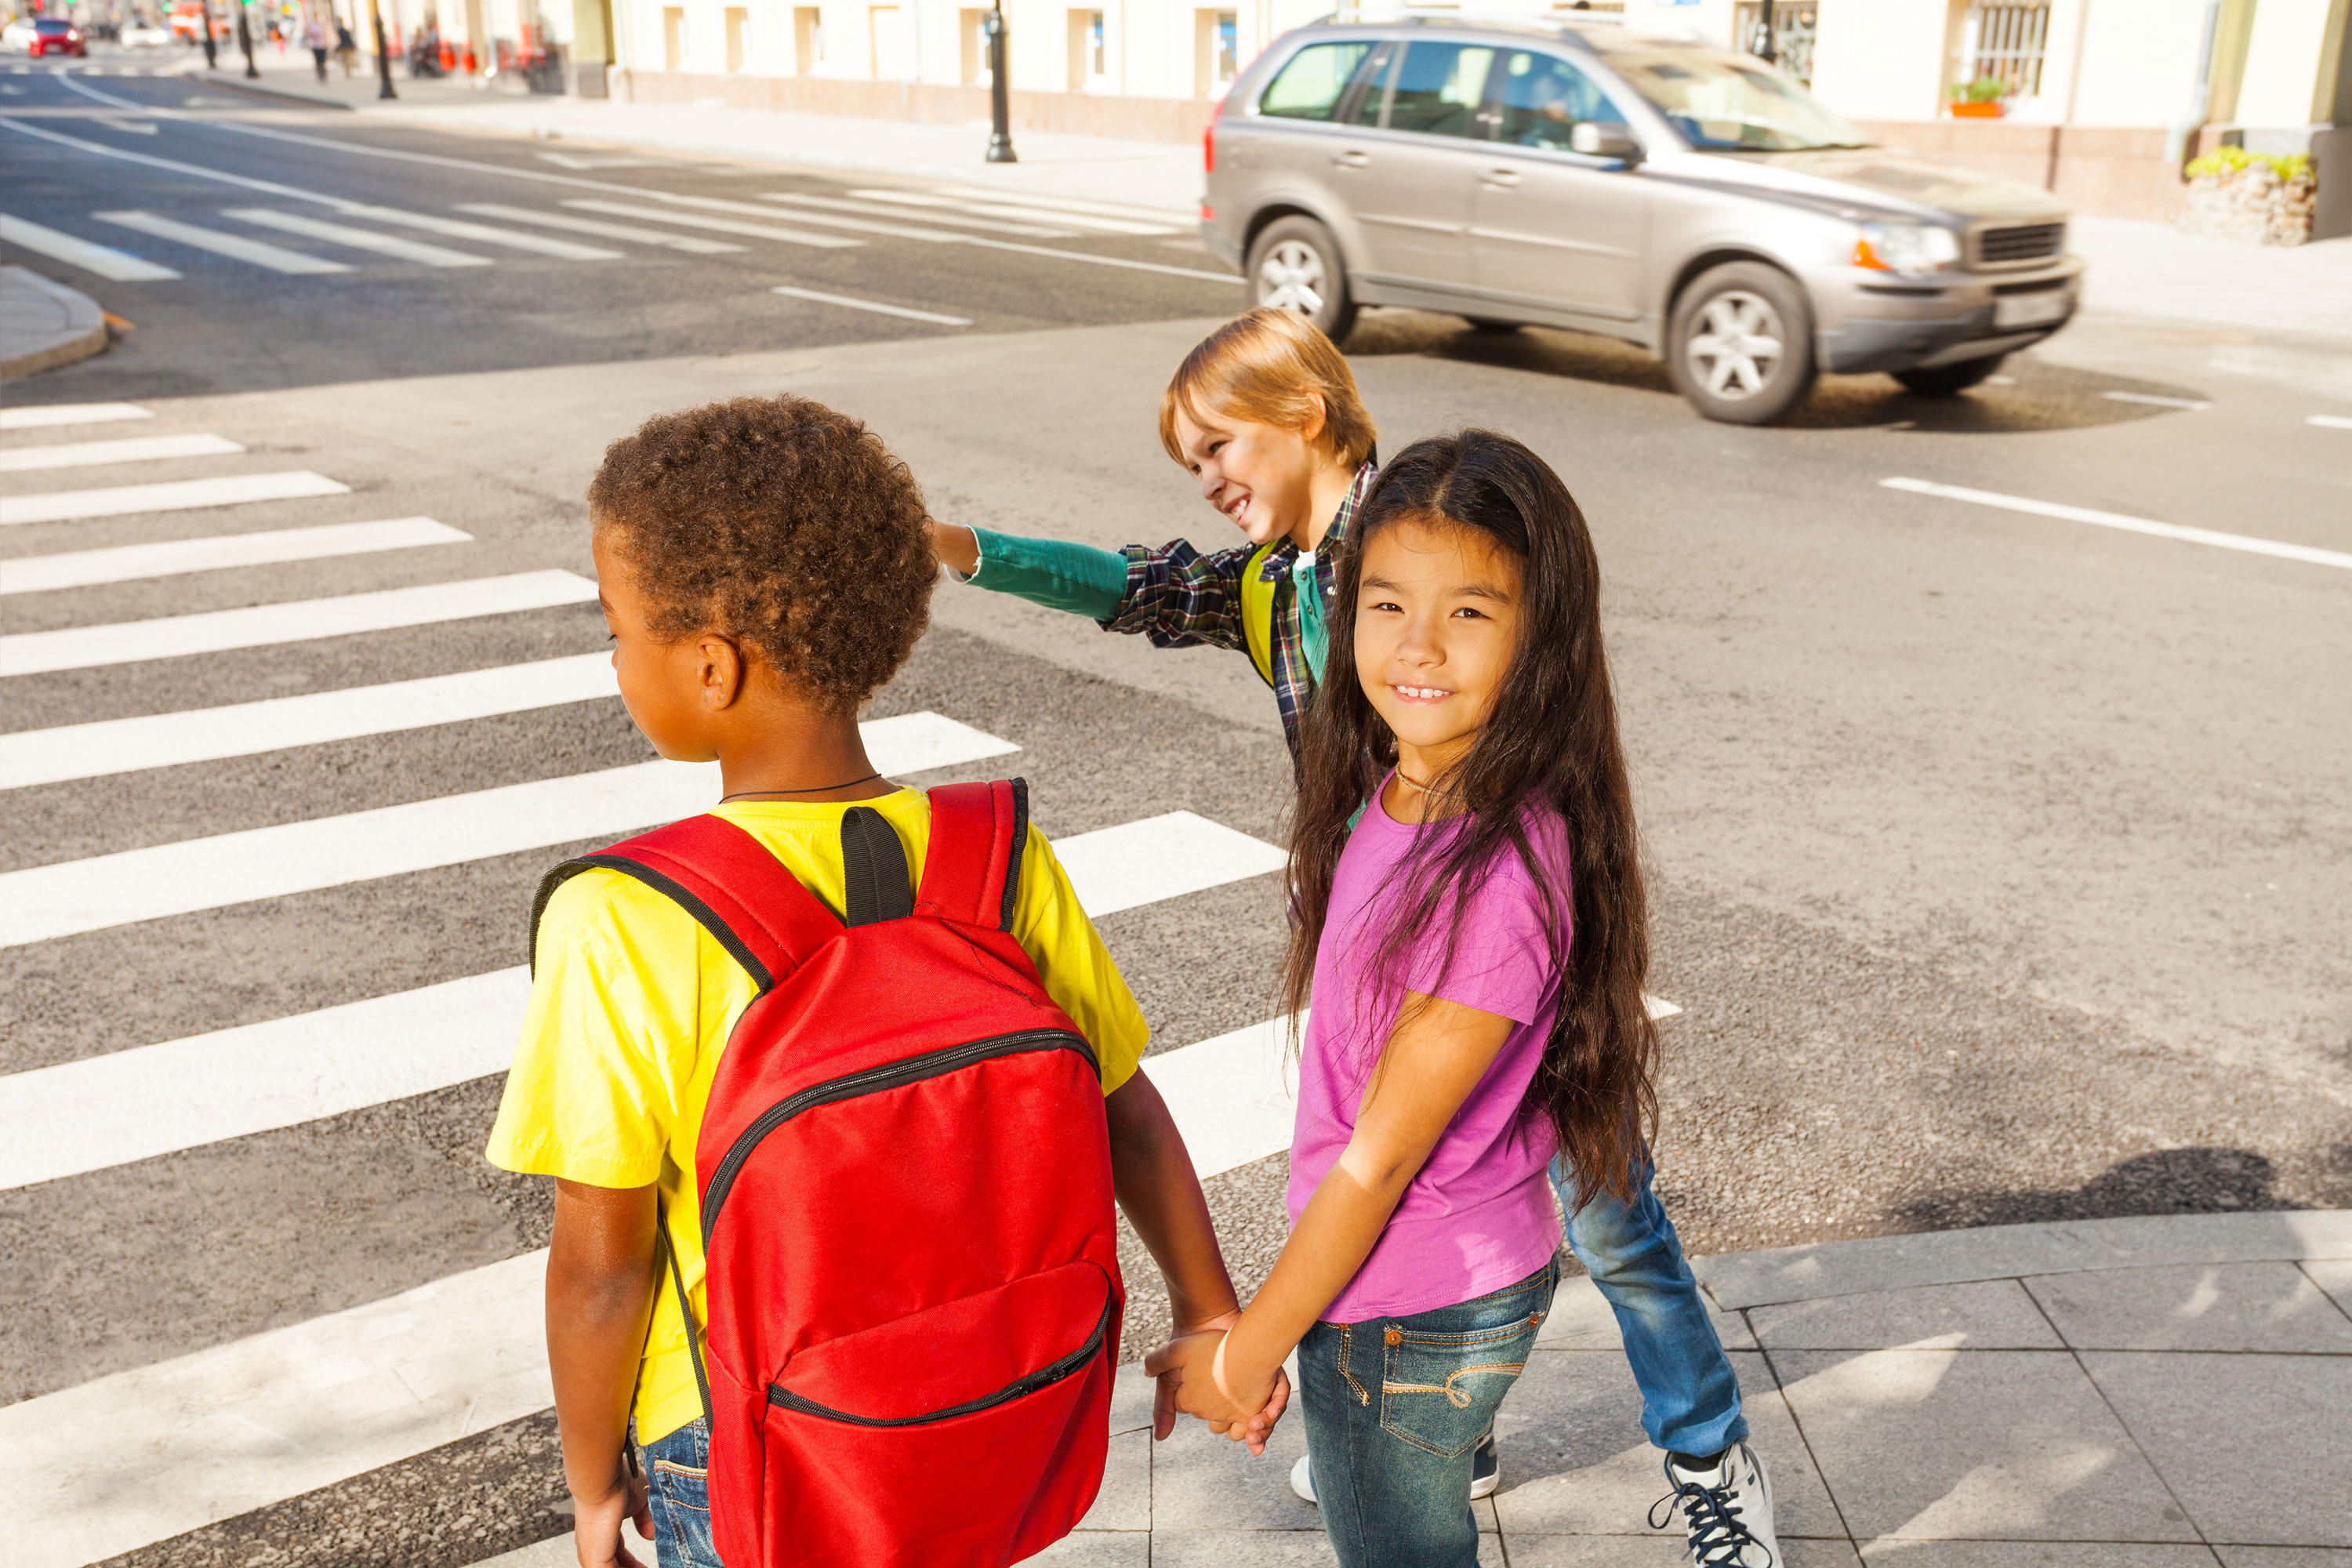 Teaching Road Safety For Children